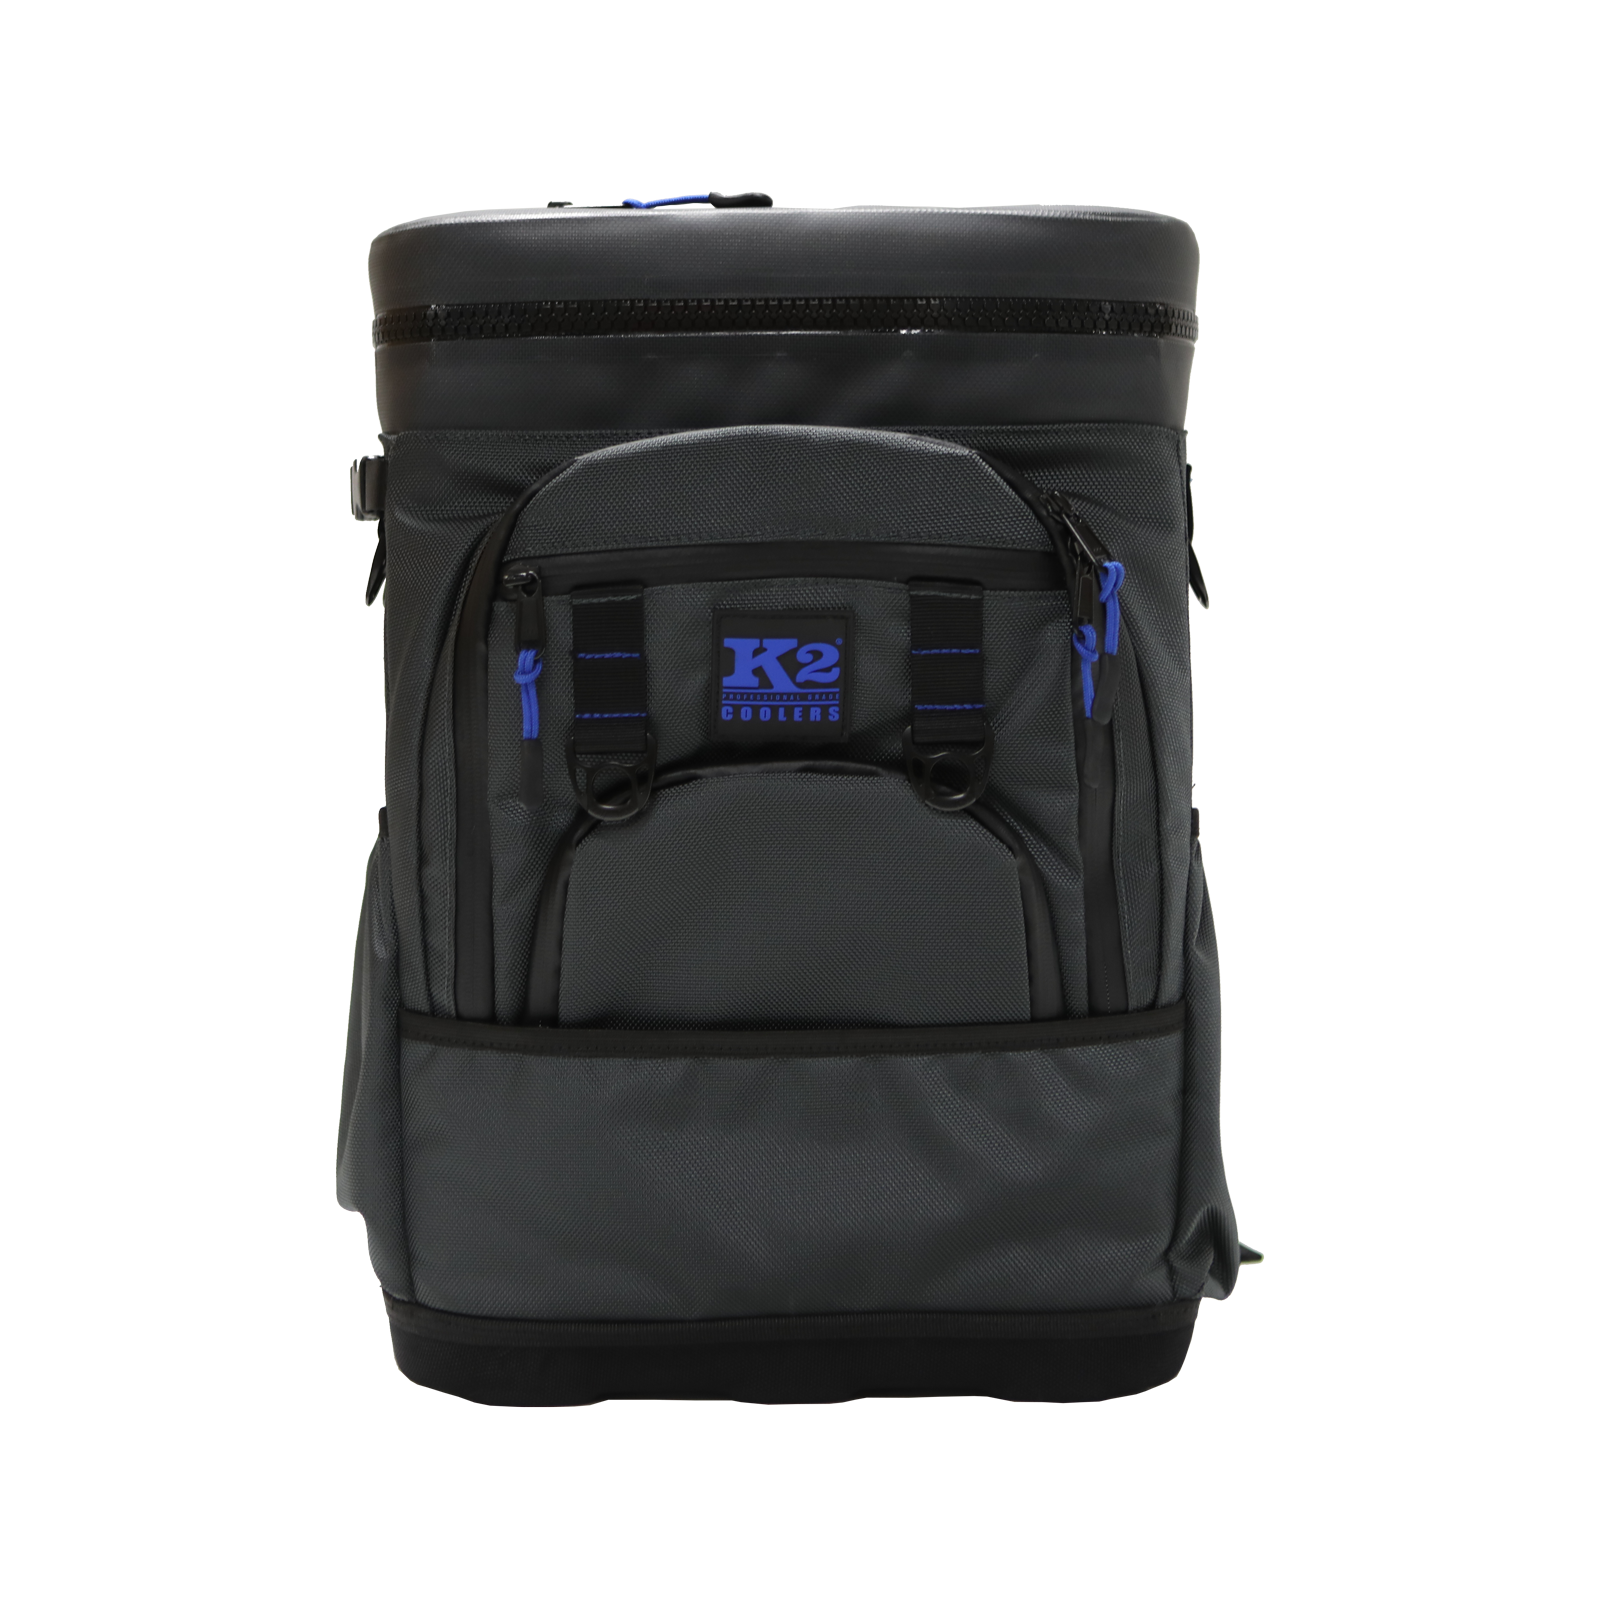 K2 Coolers Backpack Cooler Dark Grey Front View | North Star Fox